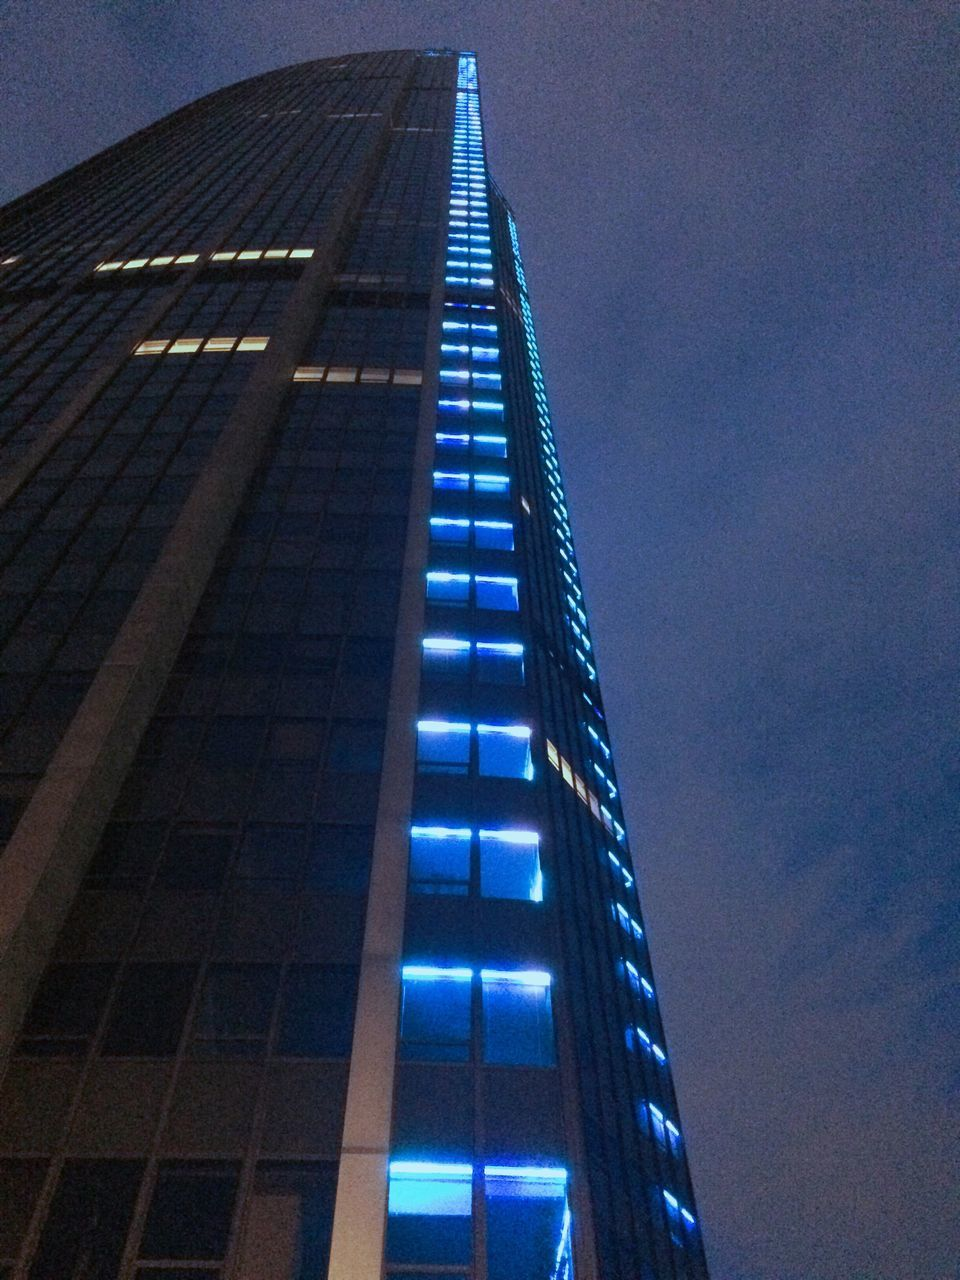 architecture, built structure, low angle view, skyscraper, building exterior, modern, blue, outdoors, sky, city, no people, night, illuminated